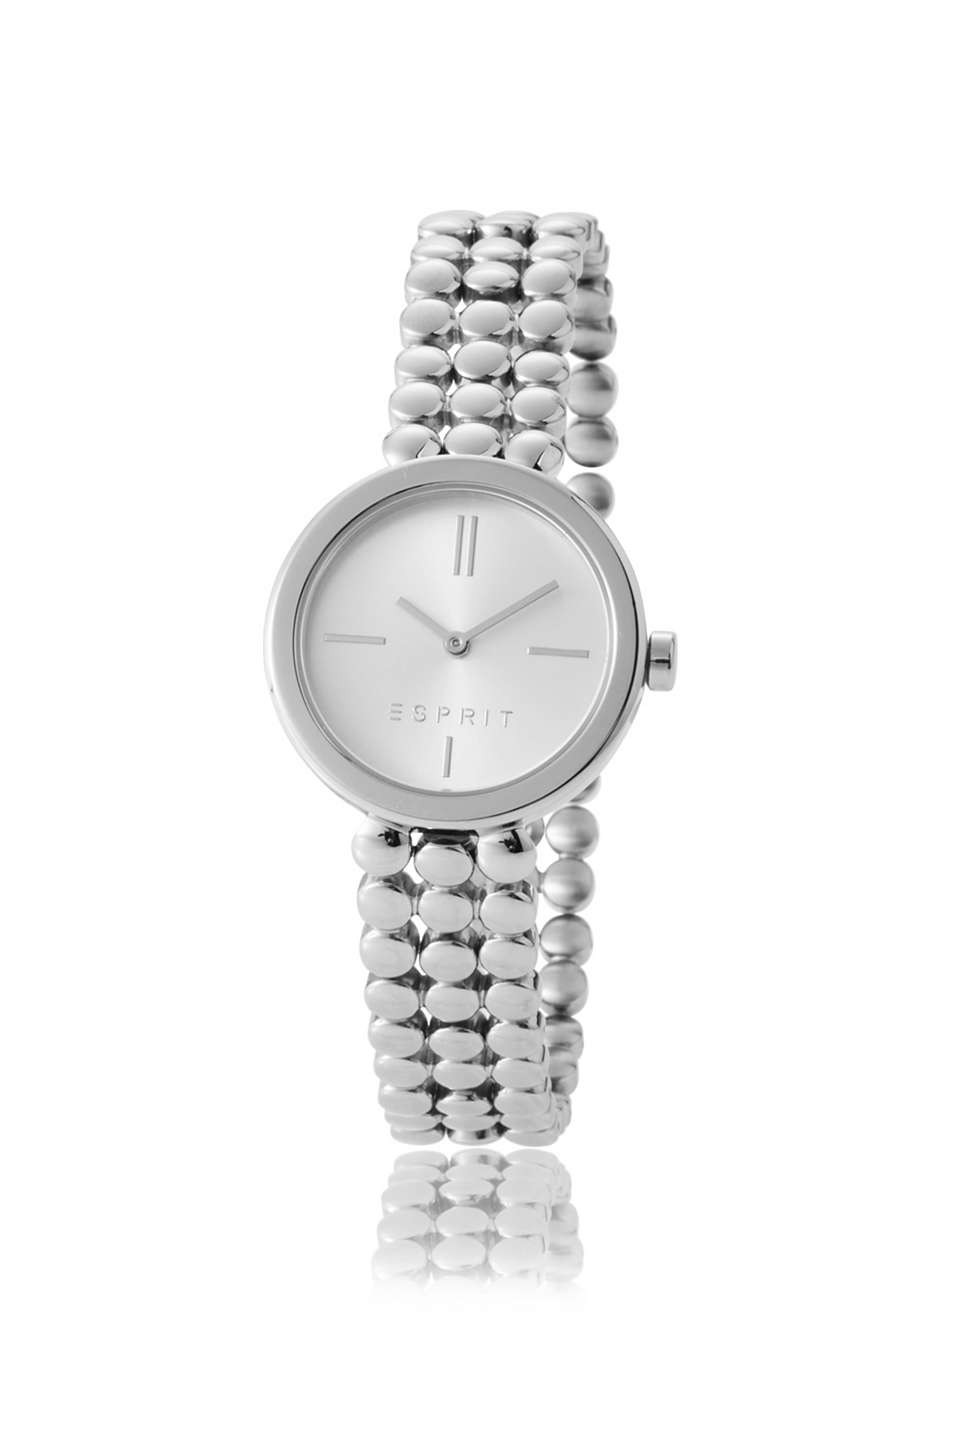 Esprit - Stainless-steel watch with a stunning strap